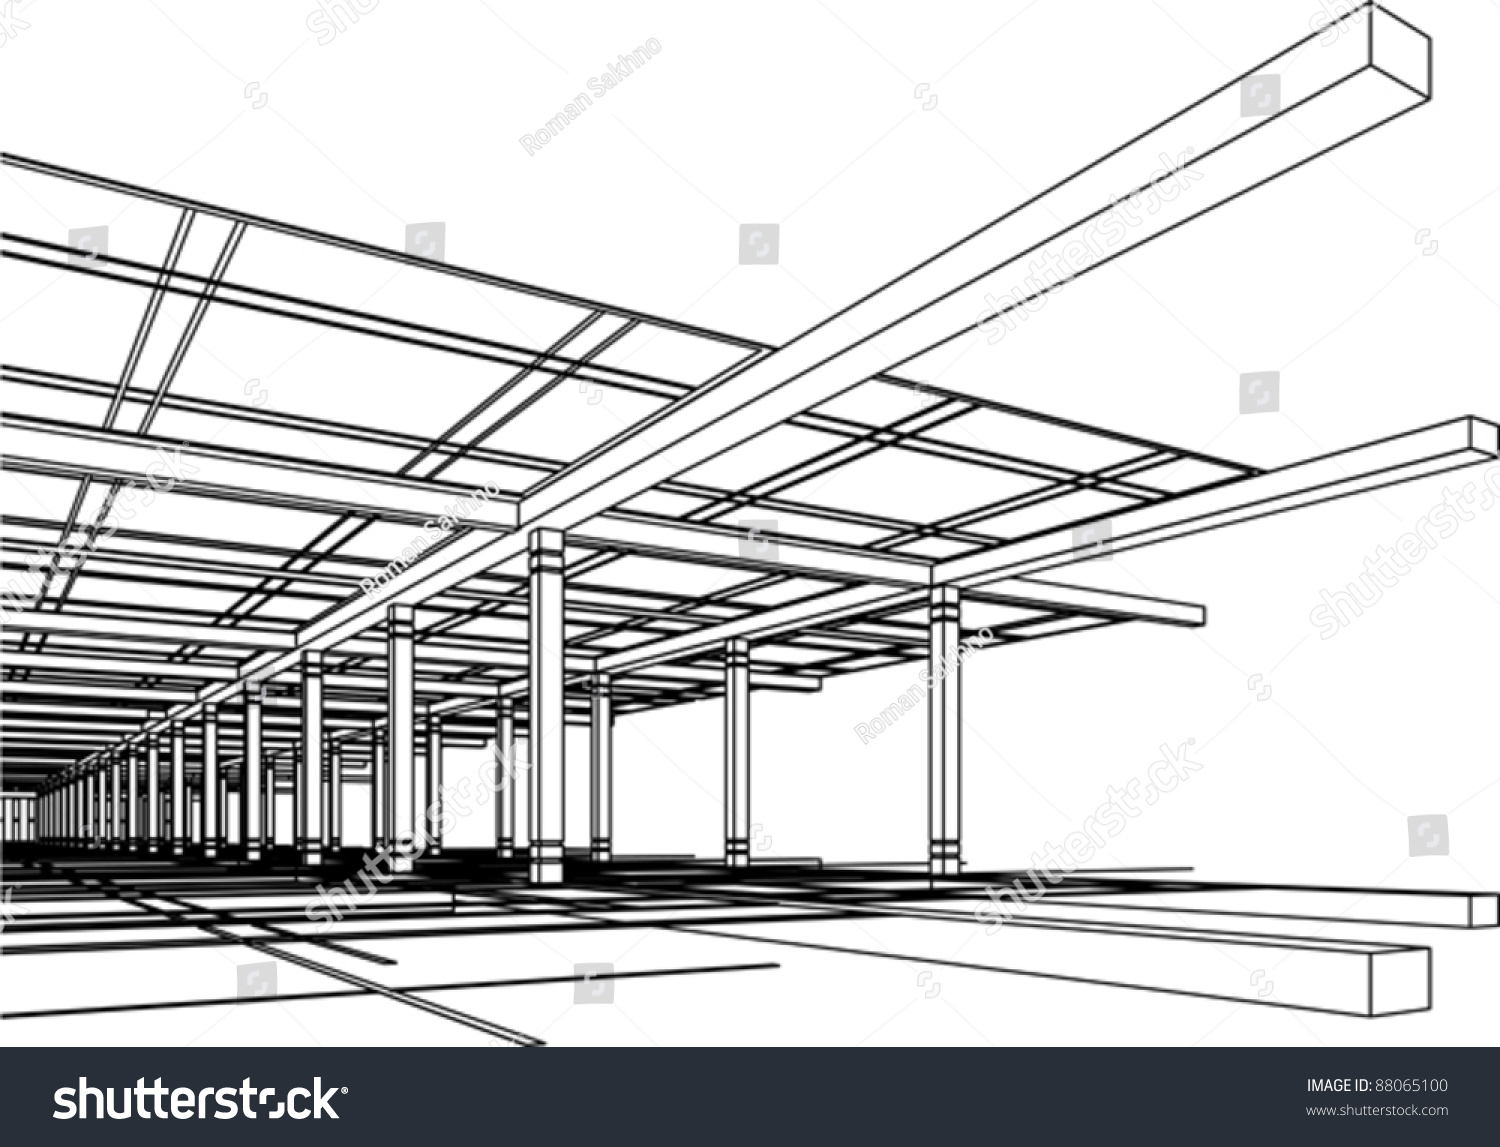 3d abstract architectural design - photo #28